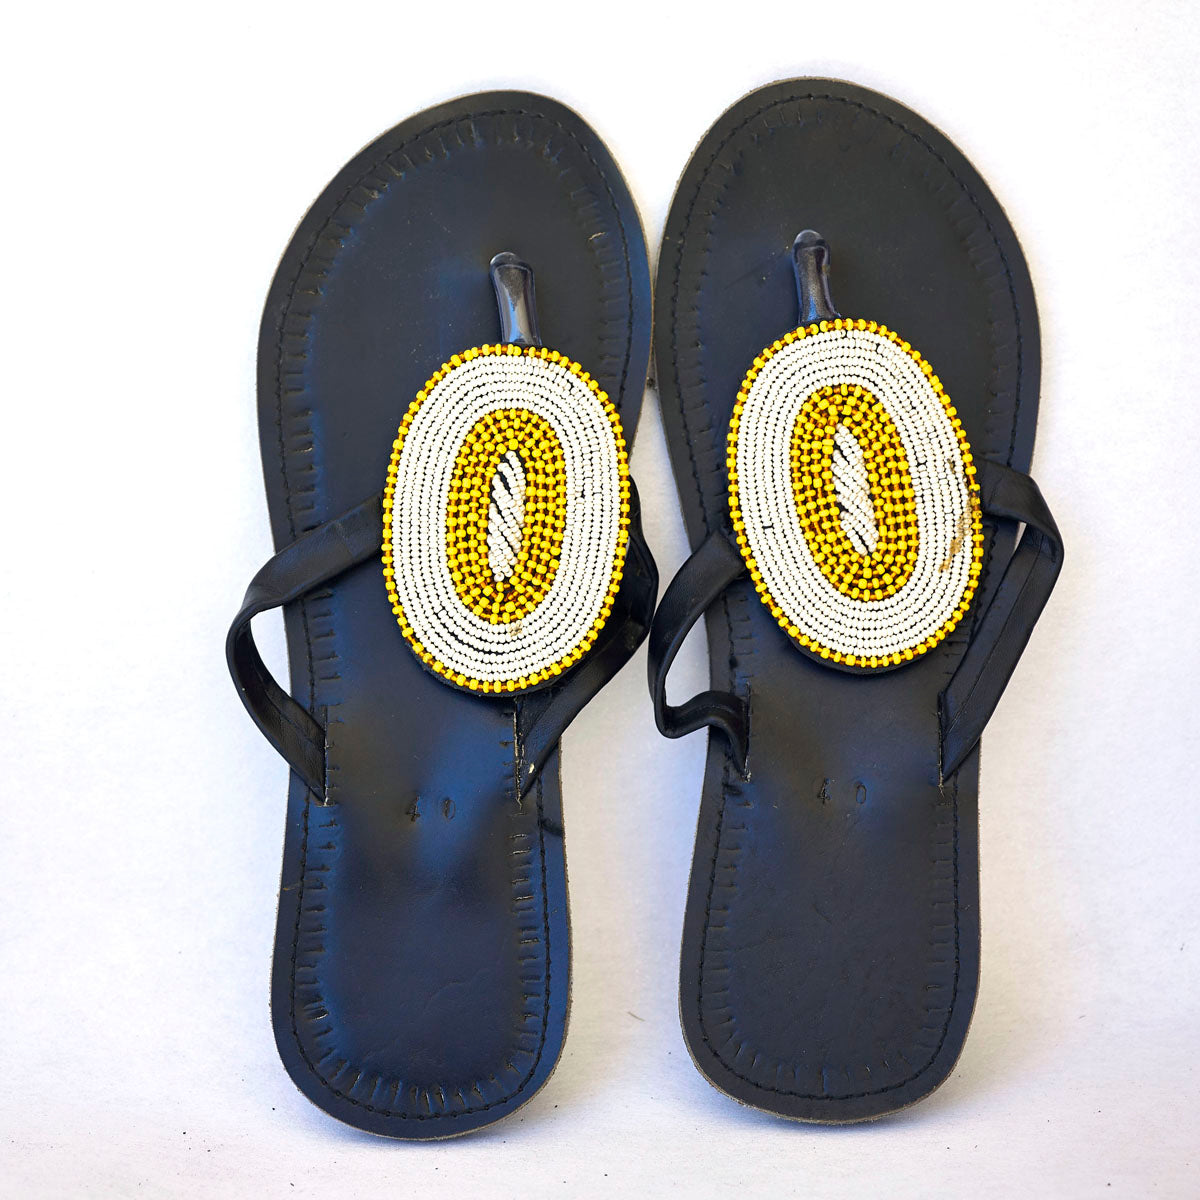 a266422d7863 Maasai Leather African Beads Sandals for Women - Kilimanjaro Krafts